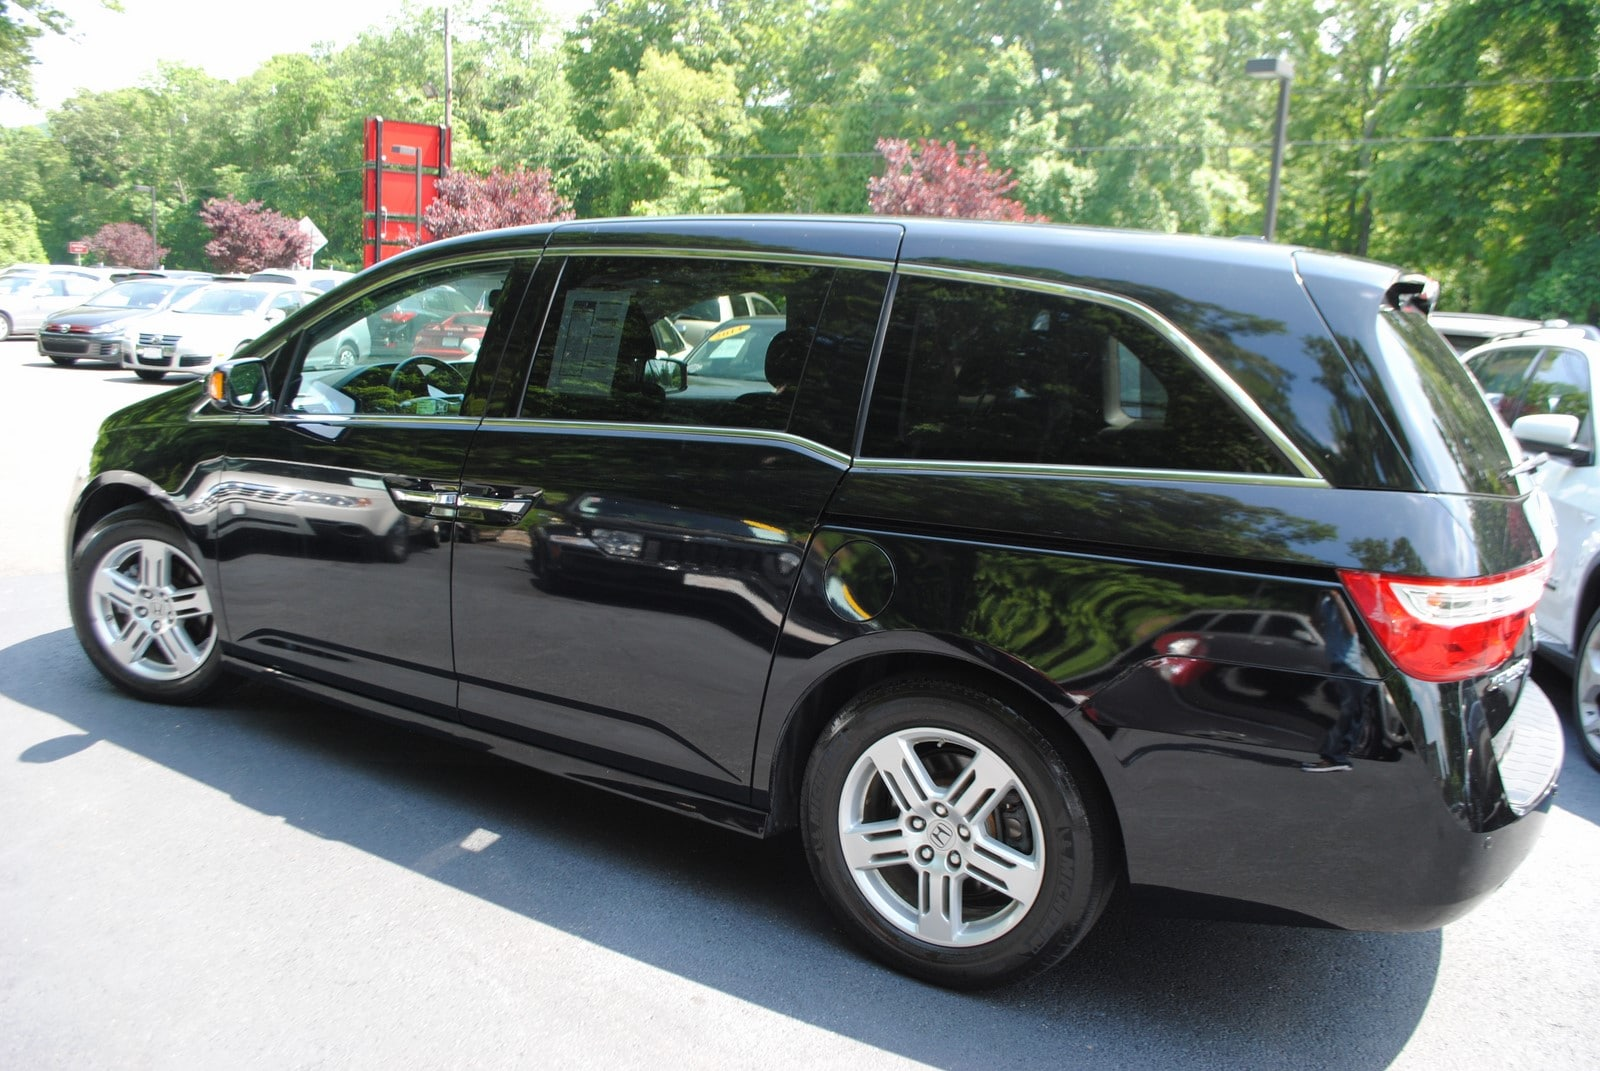 Used 2012 honda odyssey for sale west milford nj for Honda odyssey for sale nj